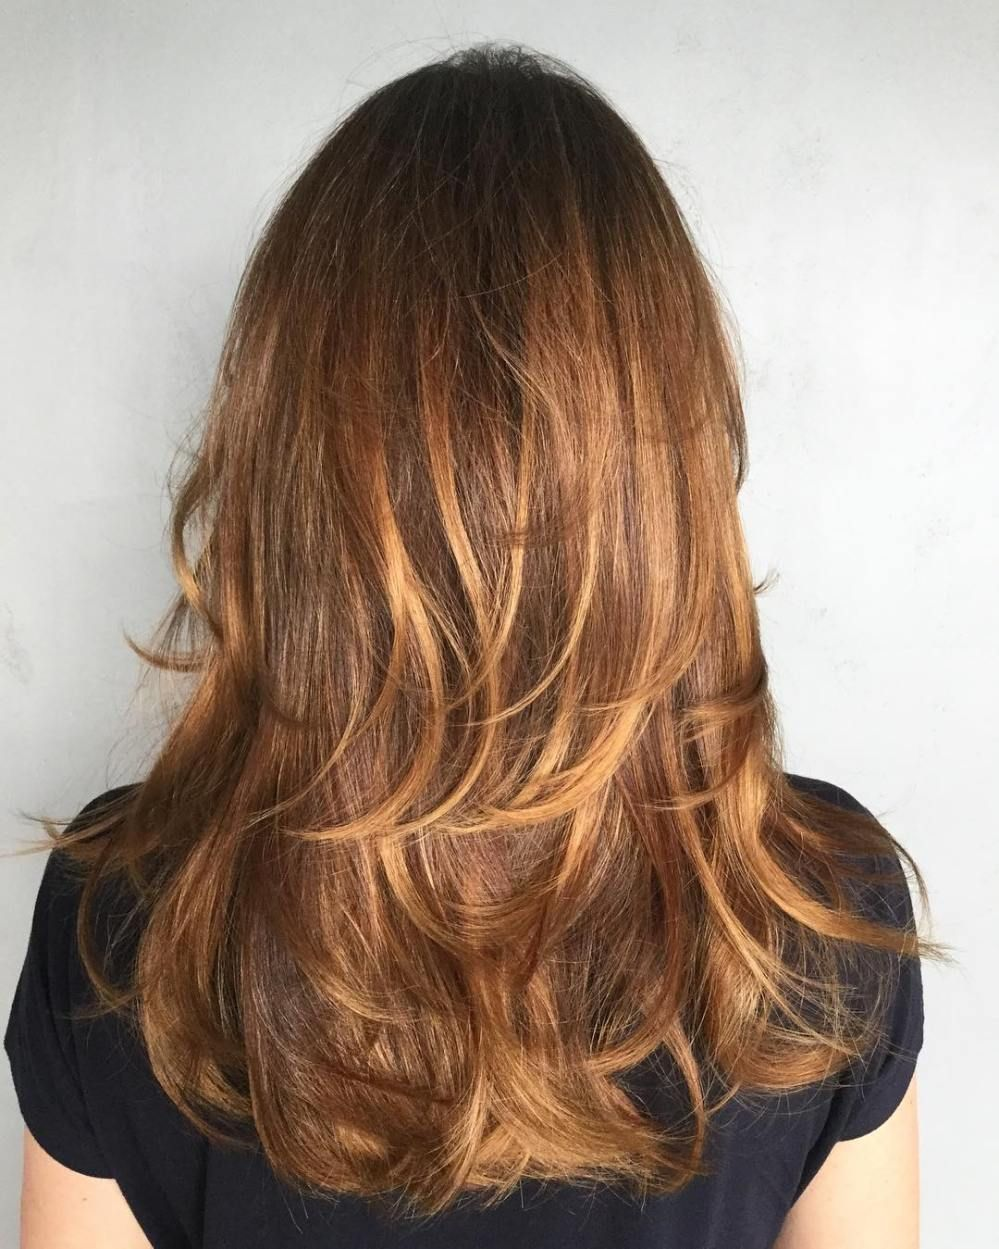 40 Long Hairstyles And Haircuts For Fine Hair Haircuts For Fine Hair Long Hair Styles Long Layered Hair